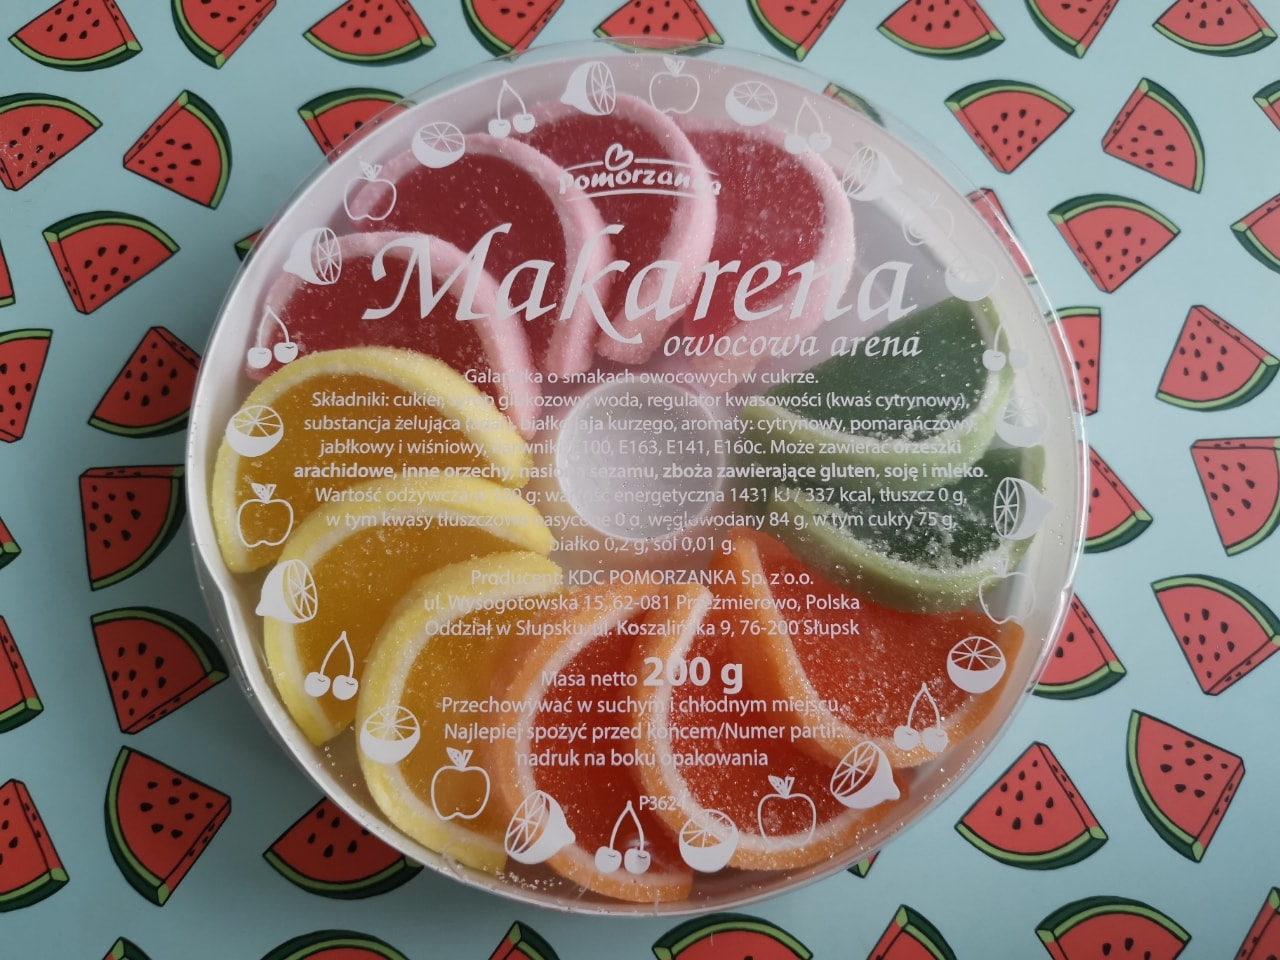 Polish sweets from Warsaw